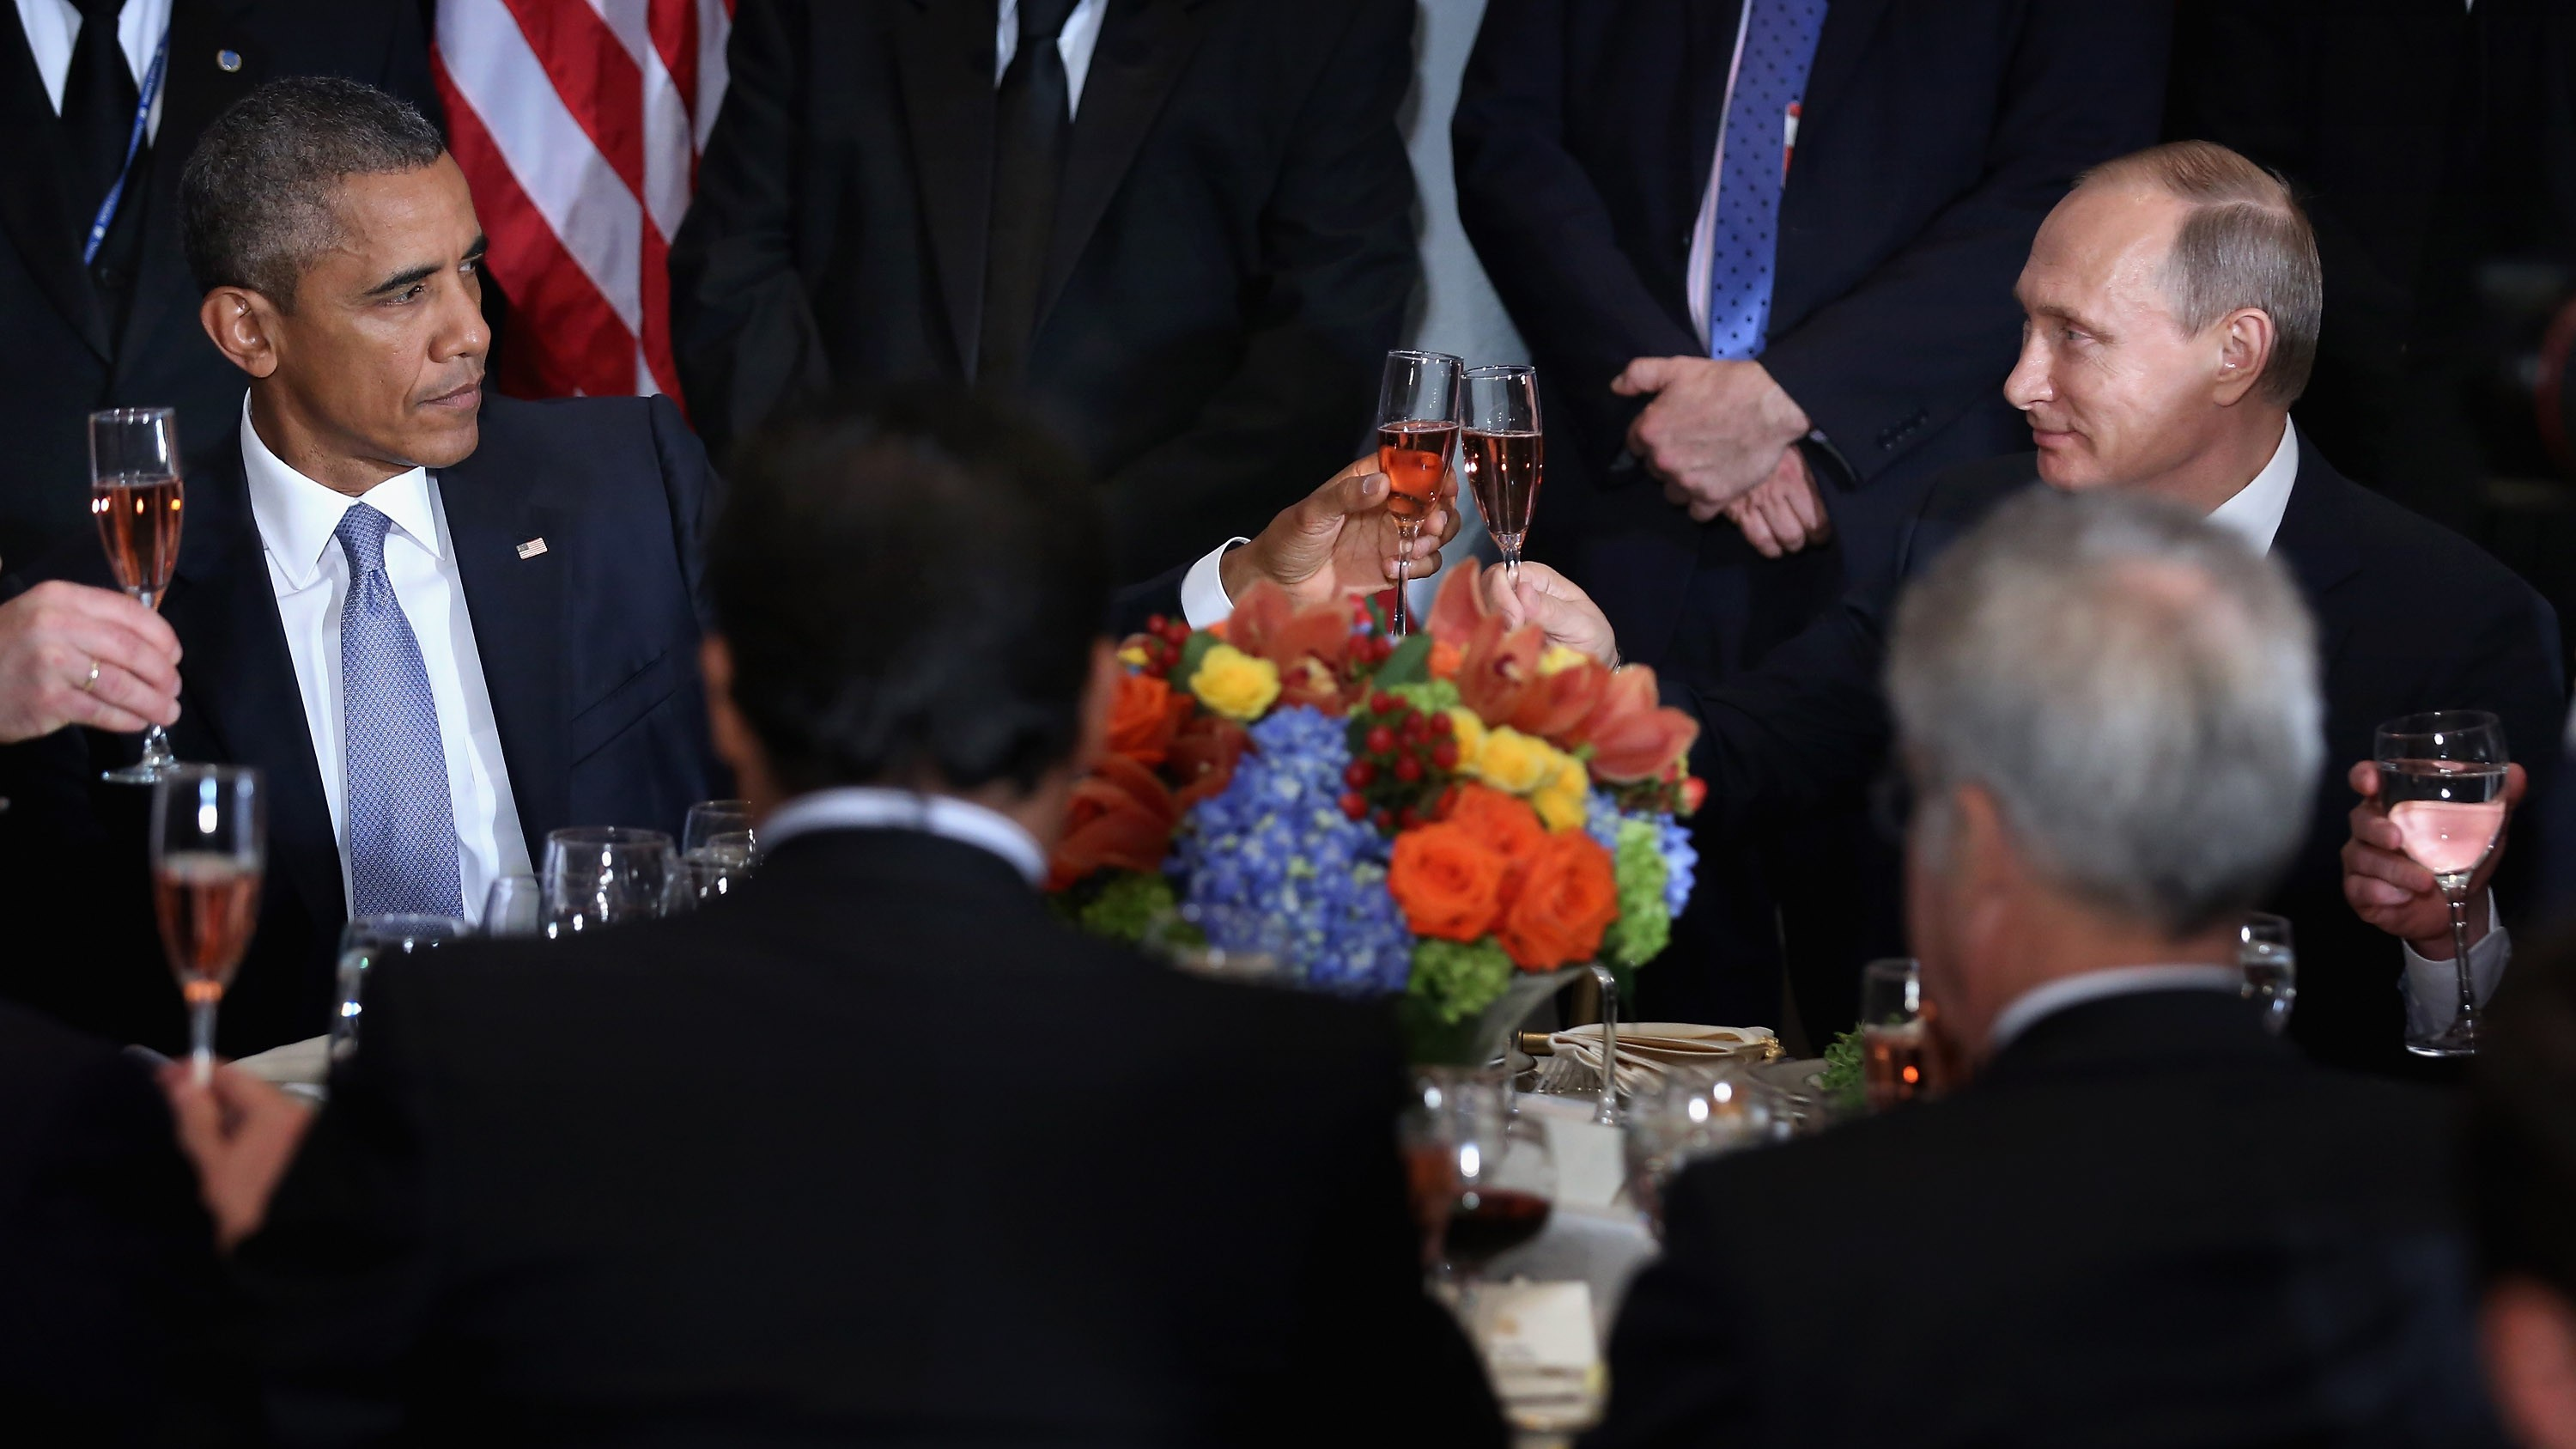 Obama and Putin Talk Trash and Clink Glasses at UN Ahead of Private Meeting